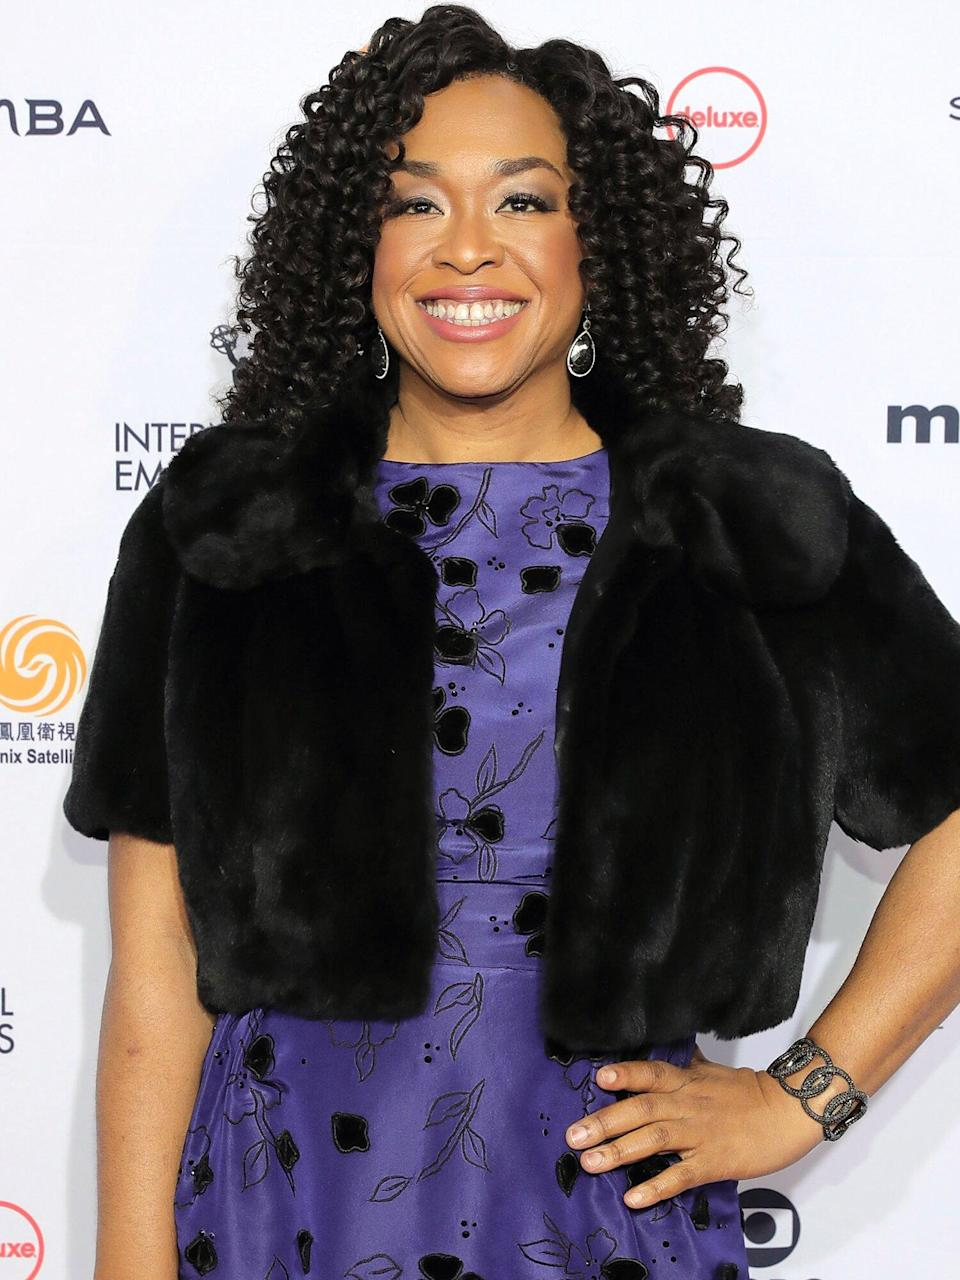 Shonda Rhimes Reveals Incident over Disneyland Pass Pushed Her to Ditch ABC